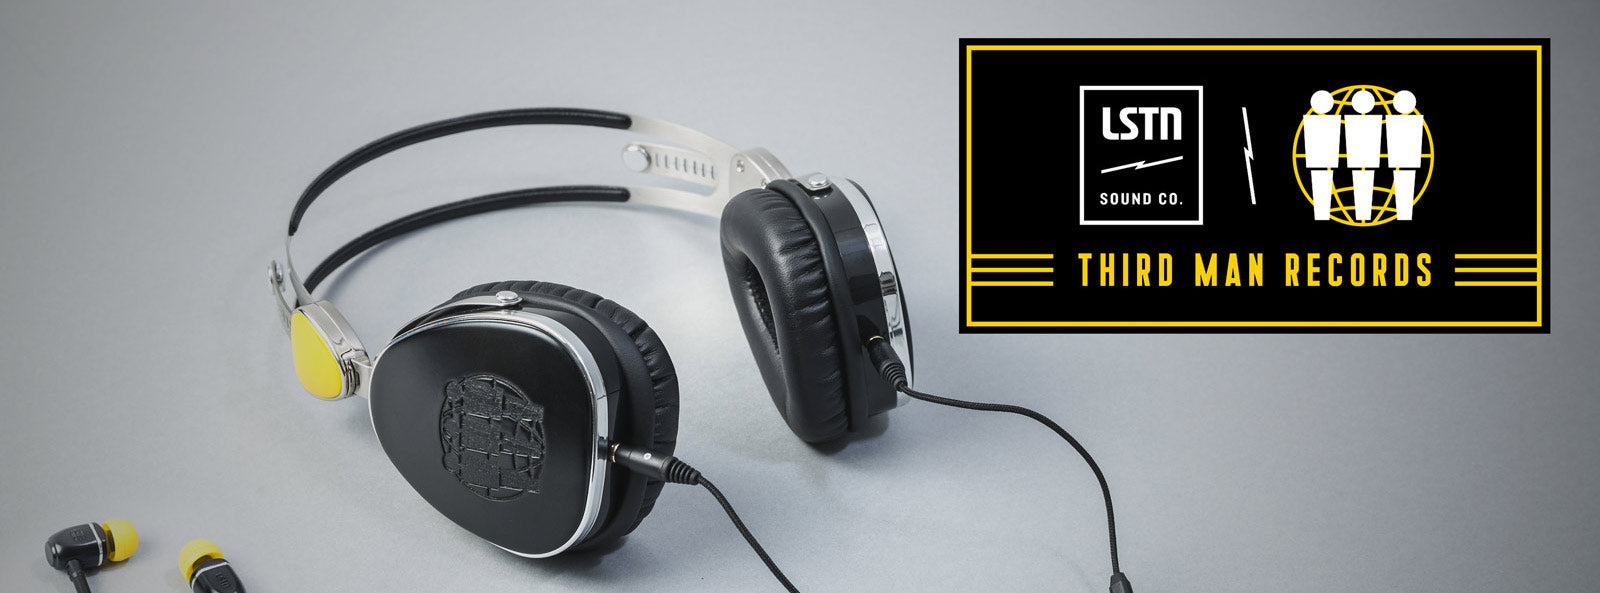 third man records wood headphones jack white and lstn sound co